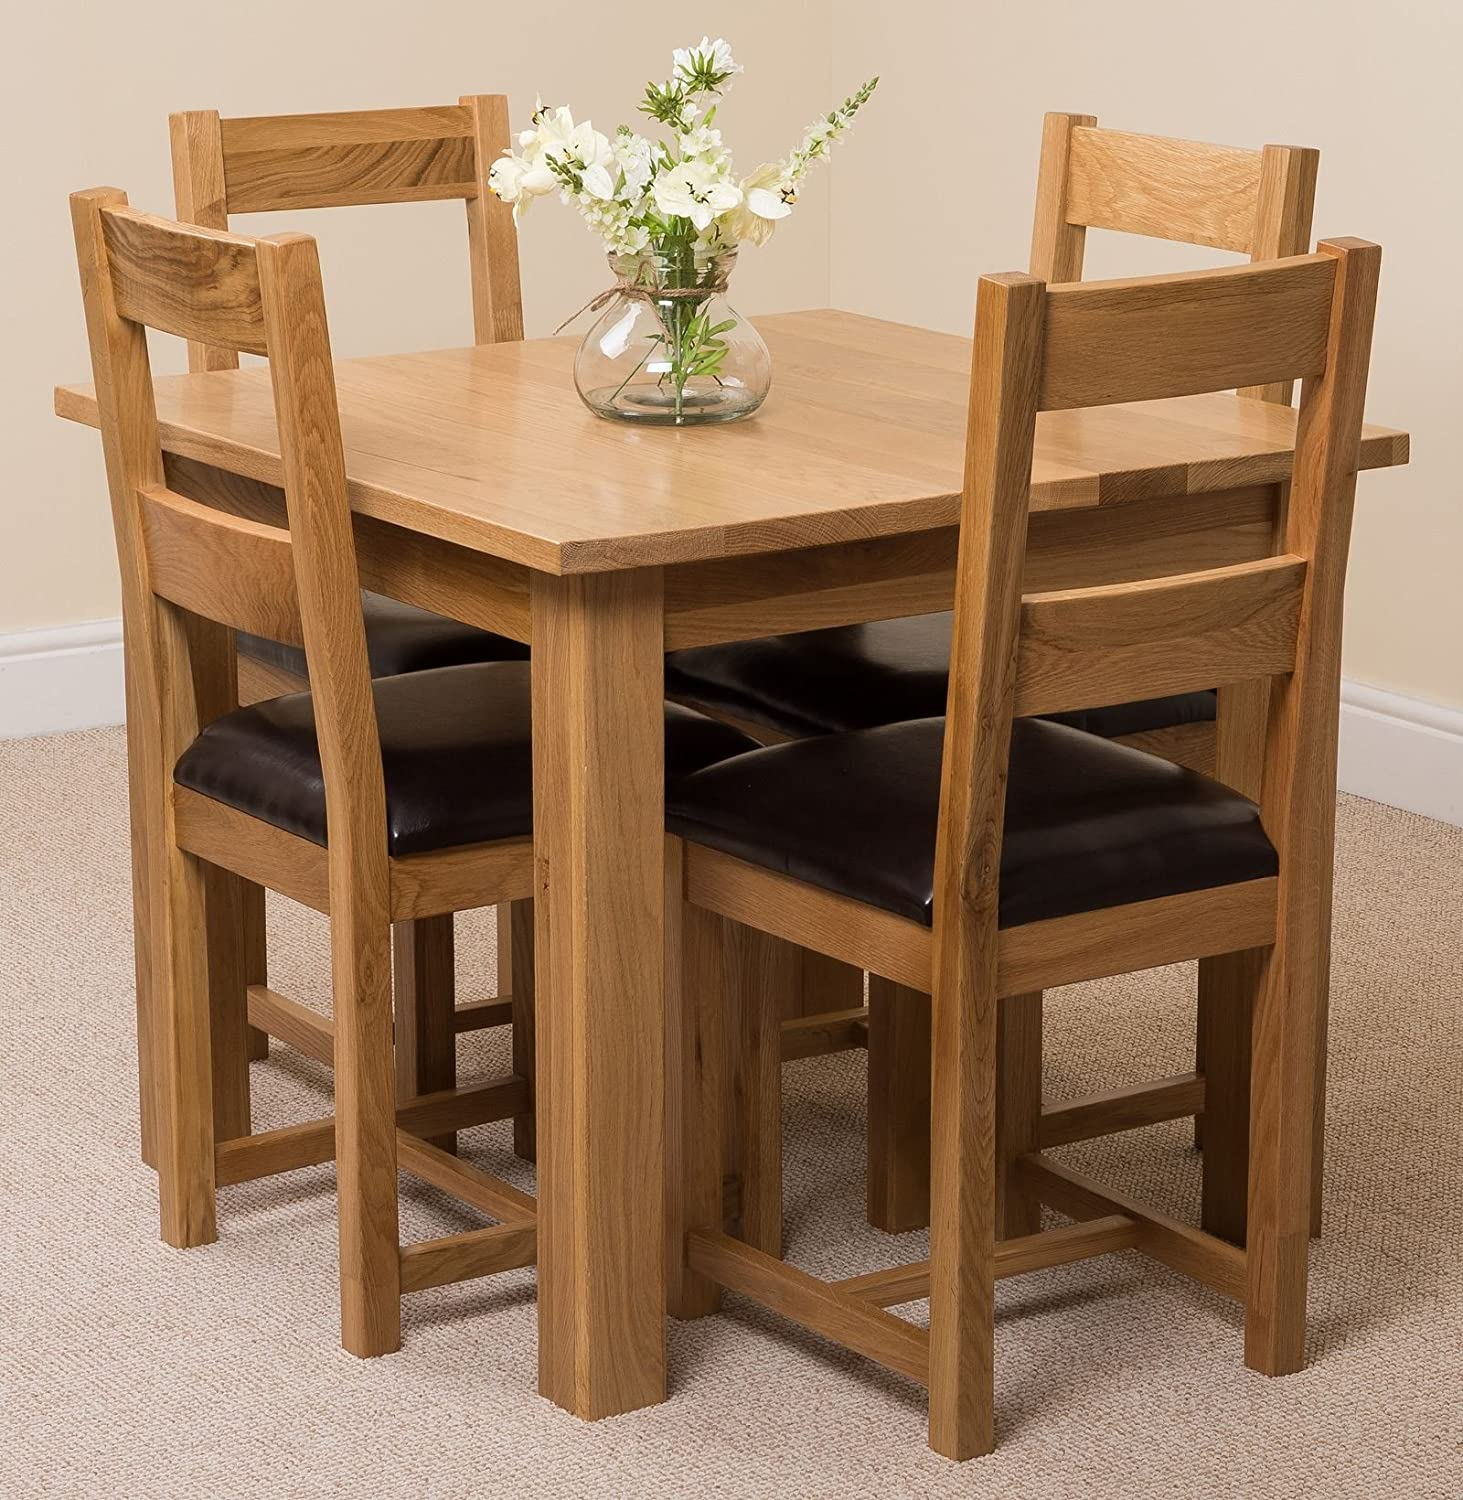 Oslo 90 X 90 Cm Oak Small Dining Table And 4 Chairs Dining Set With Lincoln Oak Chairs Amazon Co Uk Kitchen Home